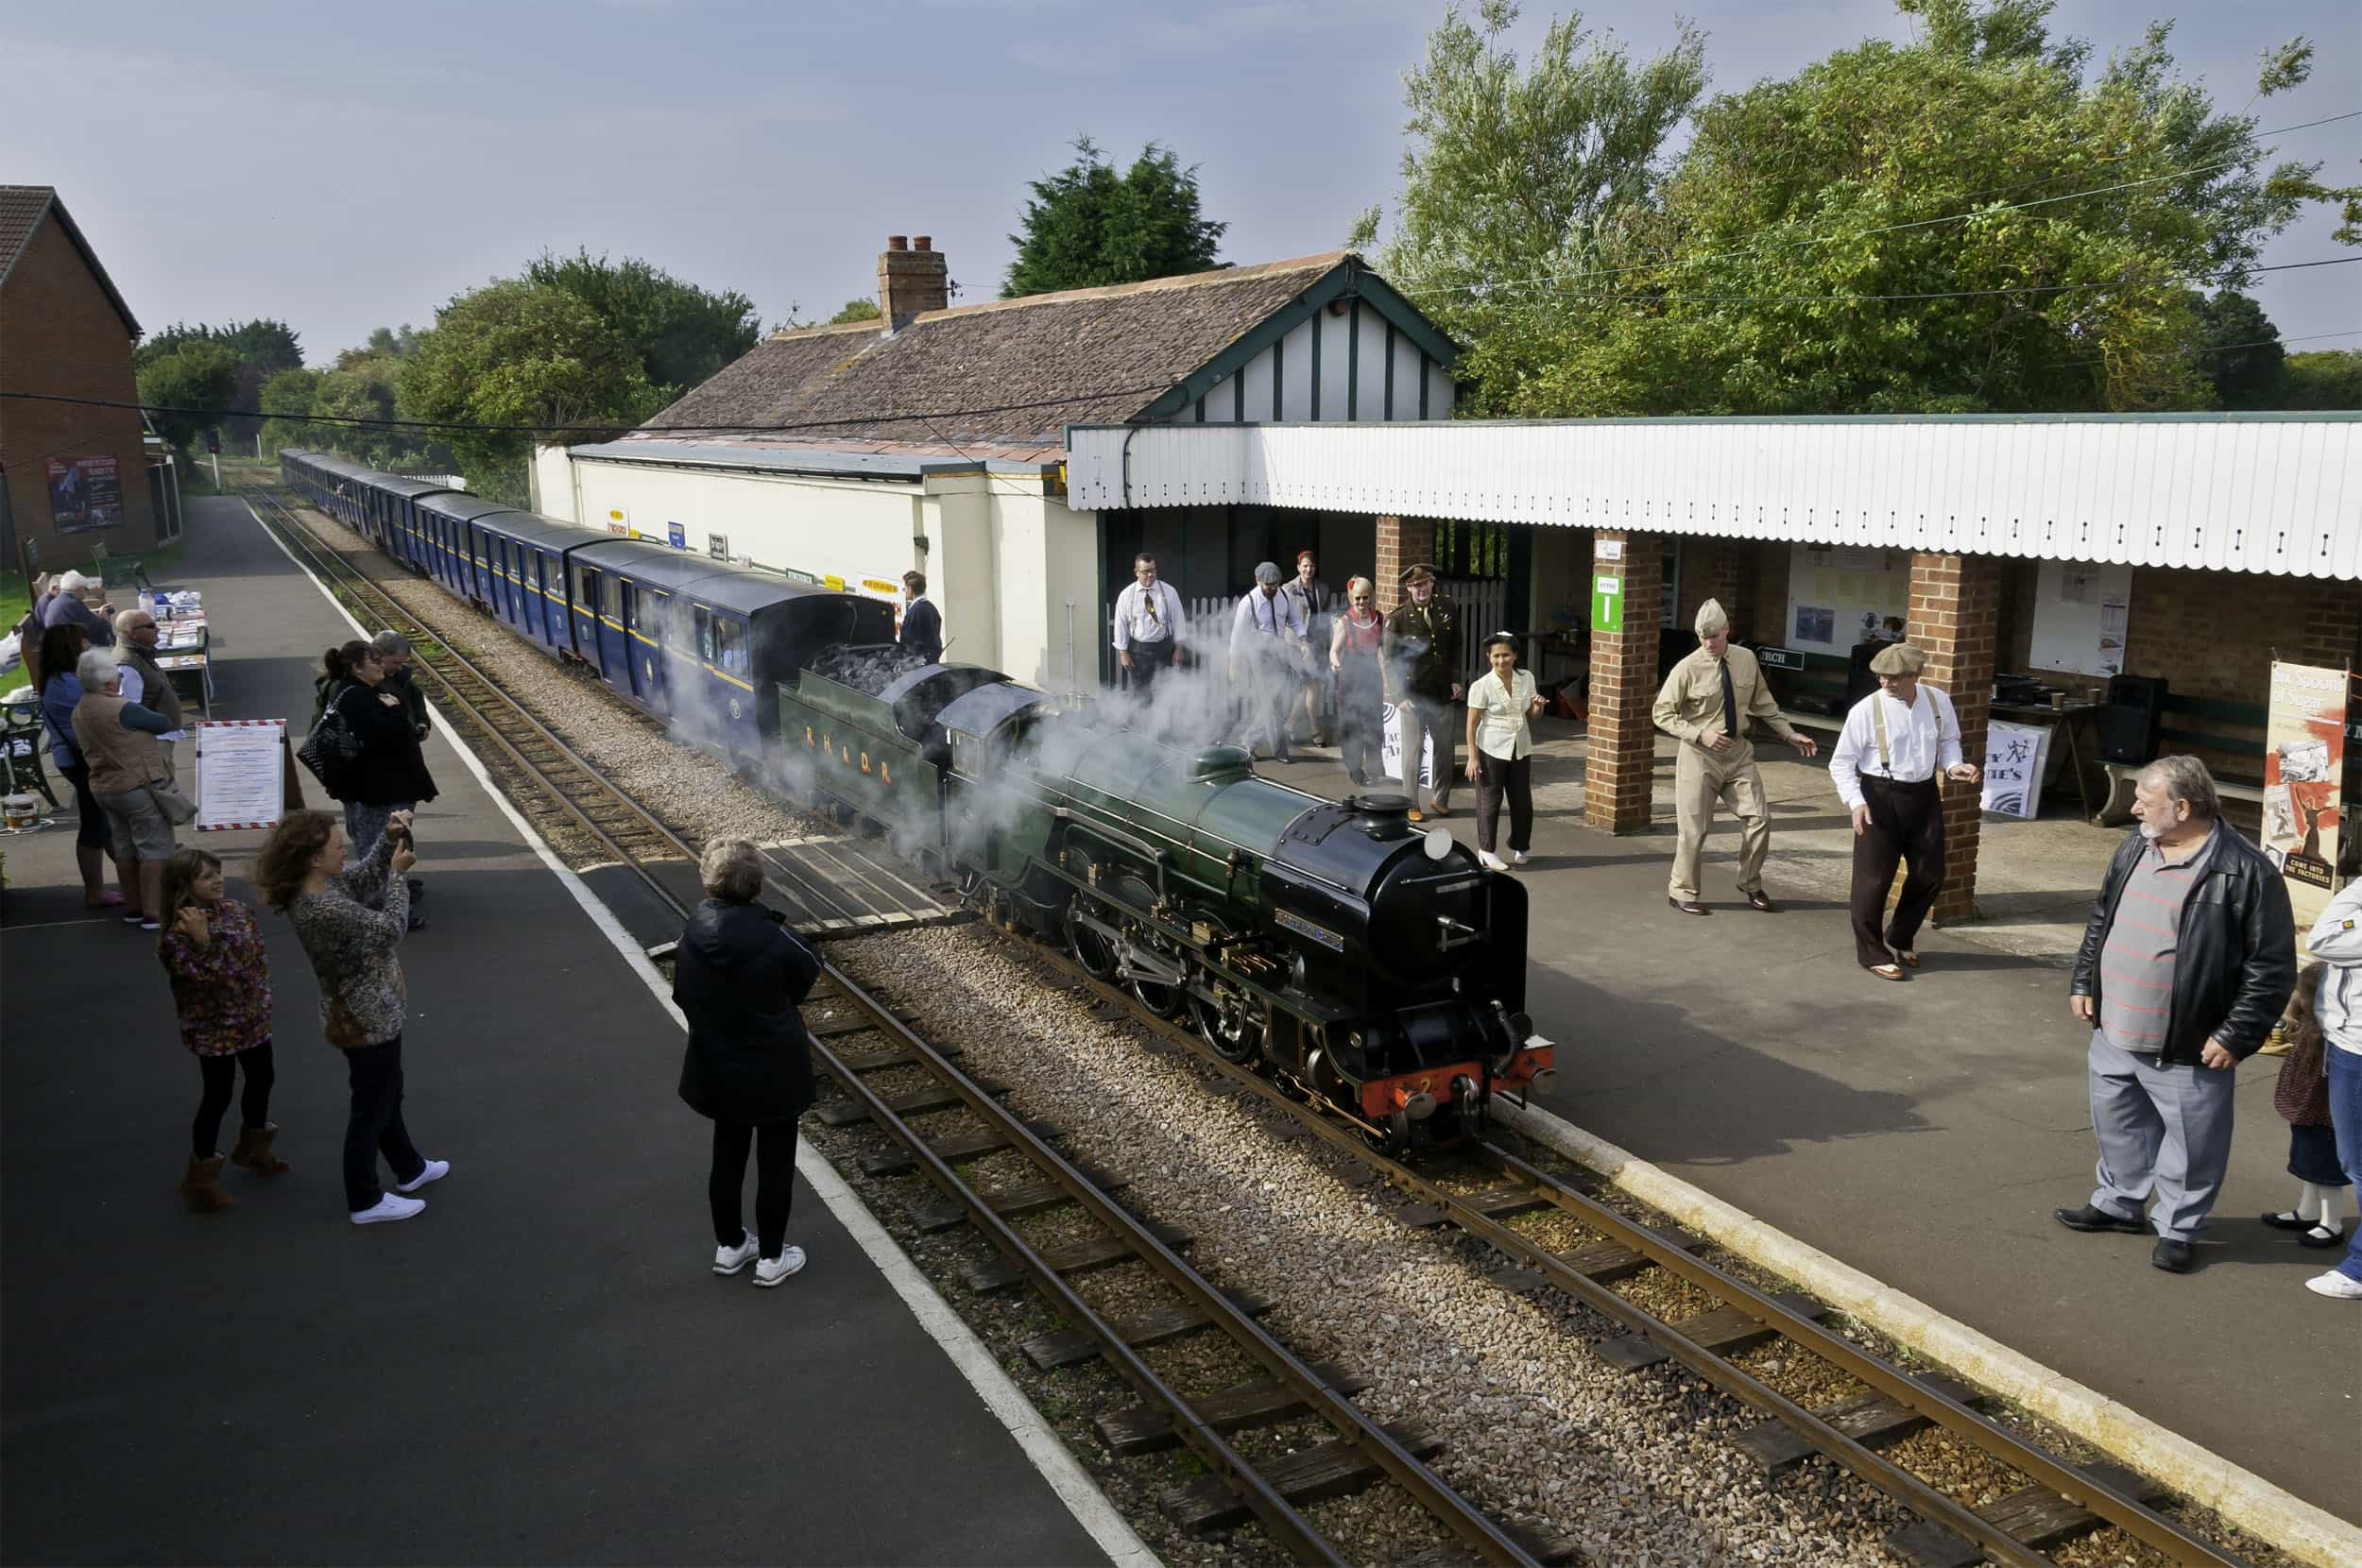 Romney, Hythe & Dymchurch Railway | Dymchurch Station